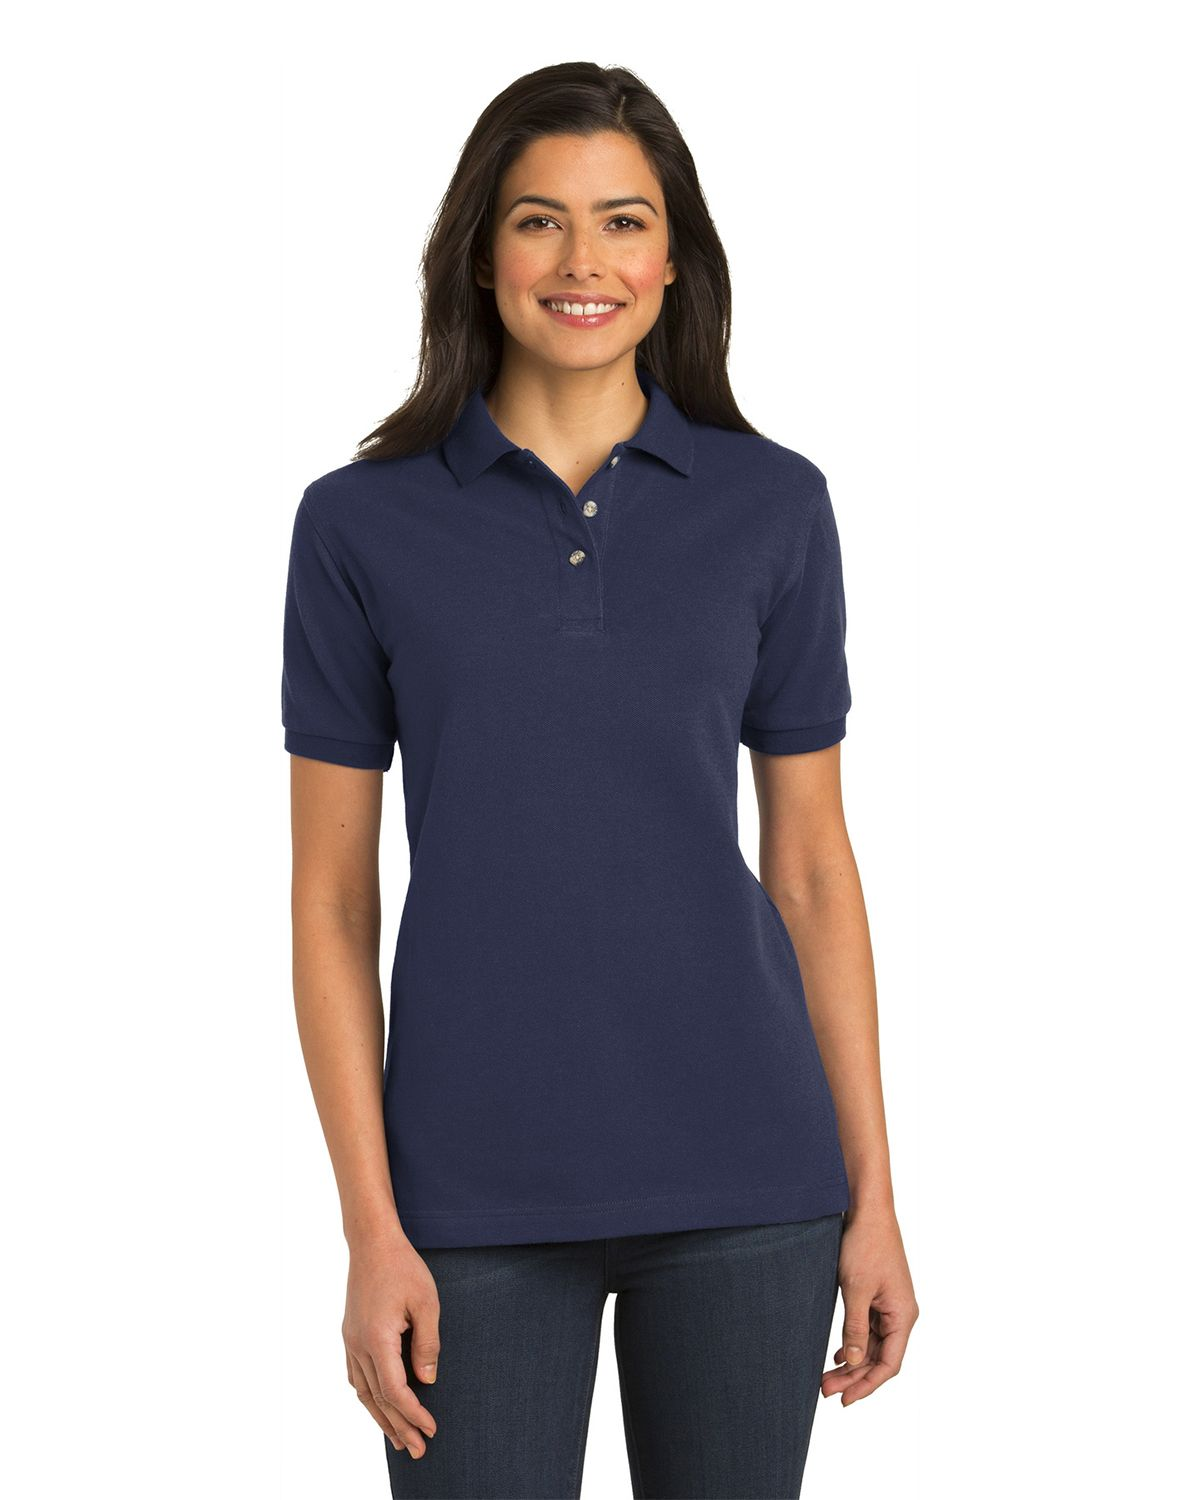 Port Authority L420 Womens Pique Knit Polo - Navy - XS